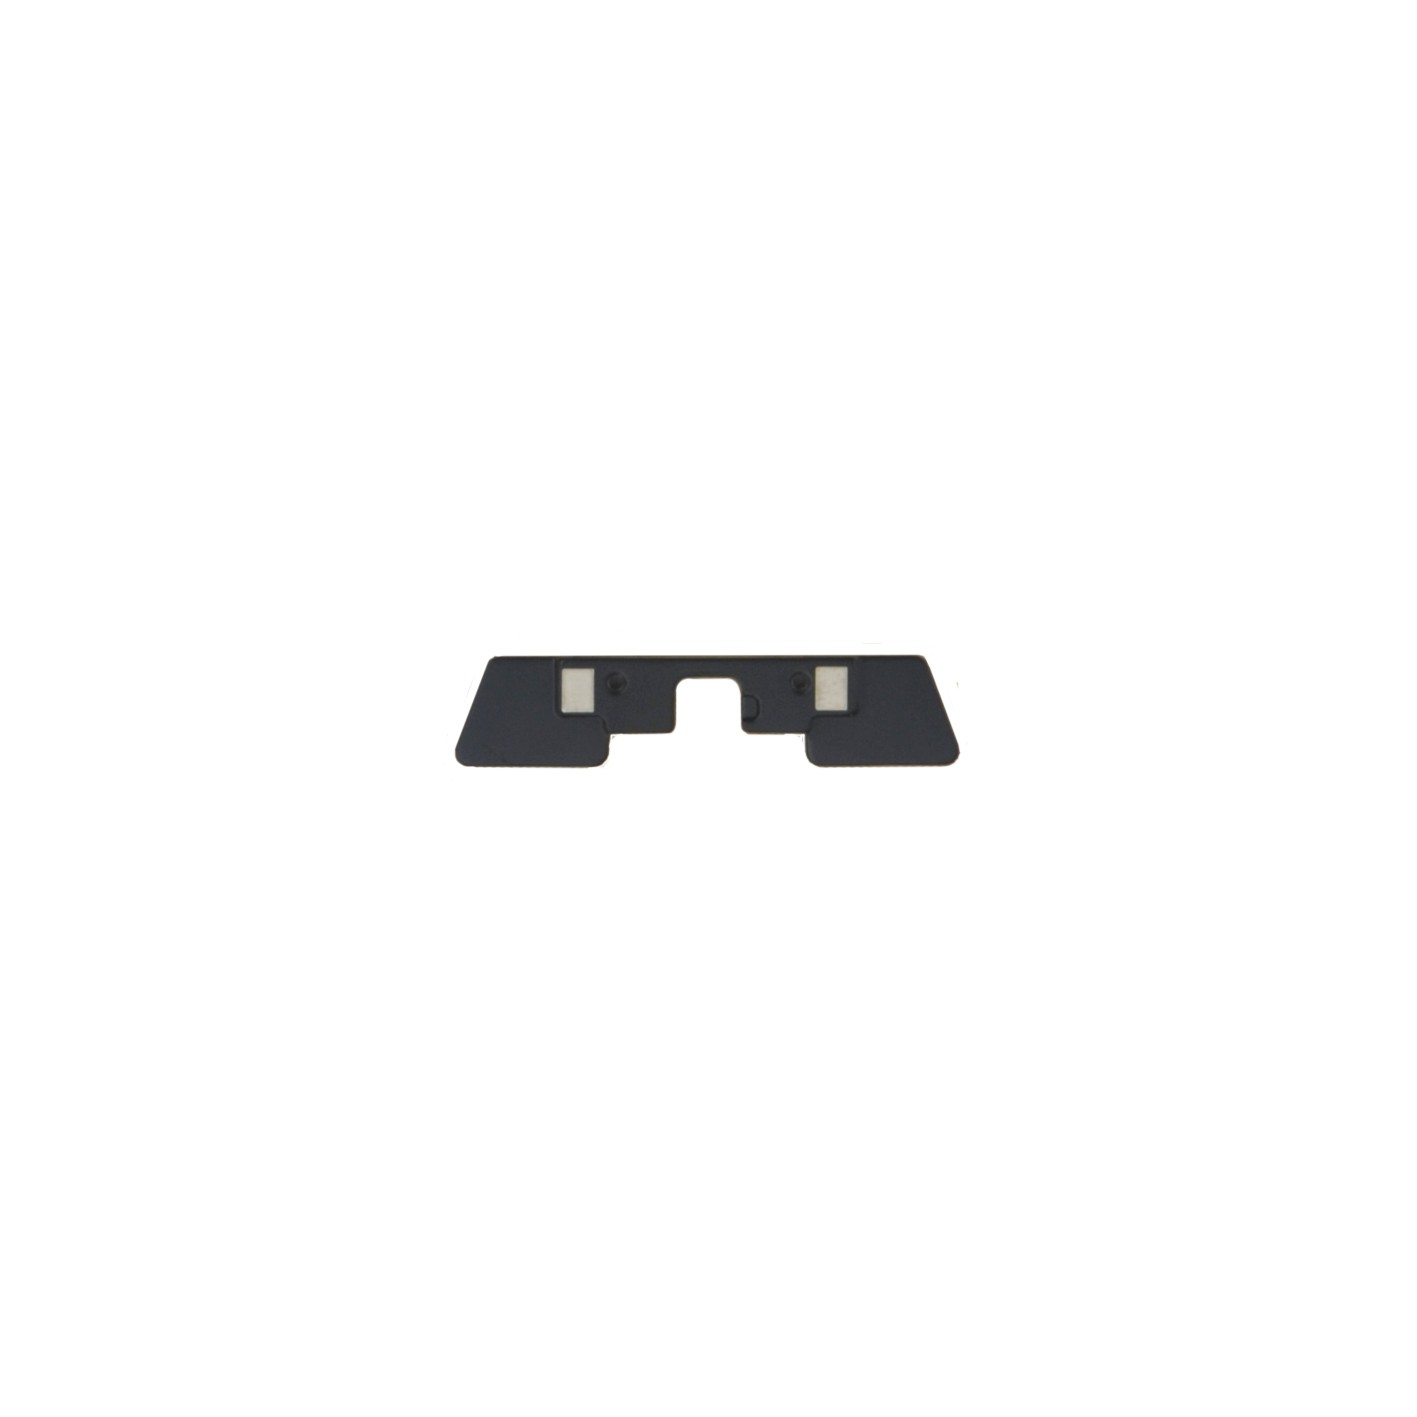 2 x Inner Home Button Metal Bracket Holder Replacement for iPad 2 3 4